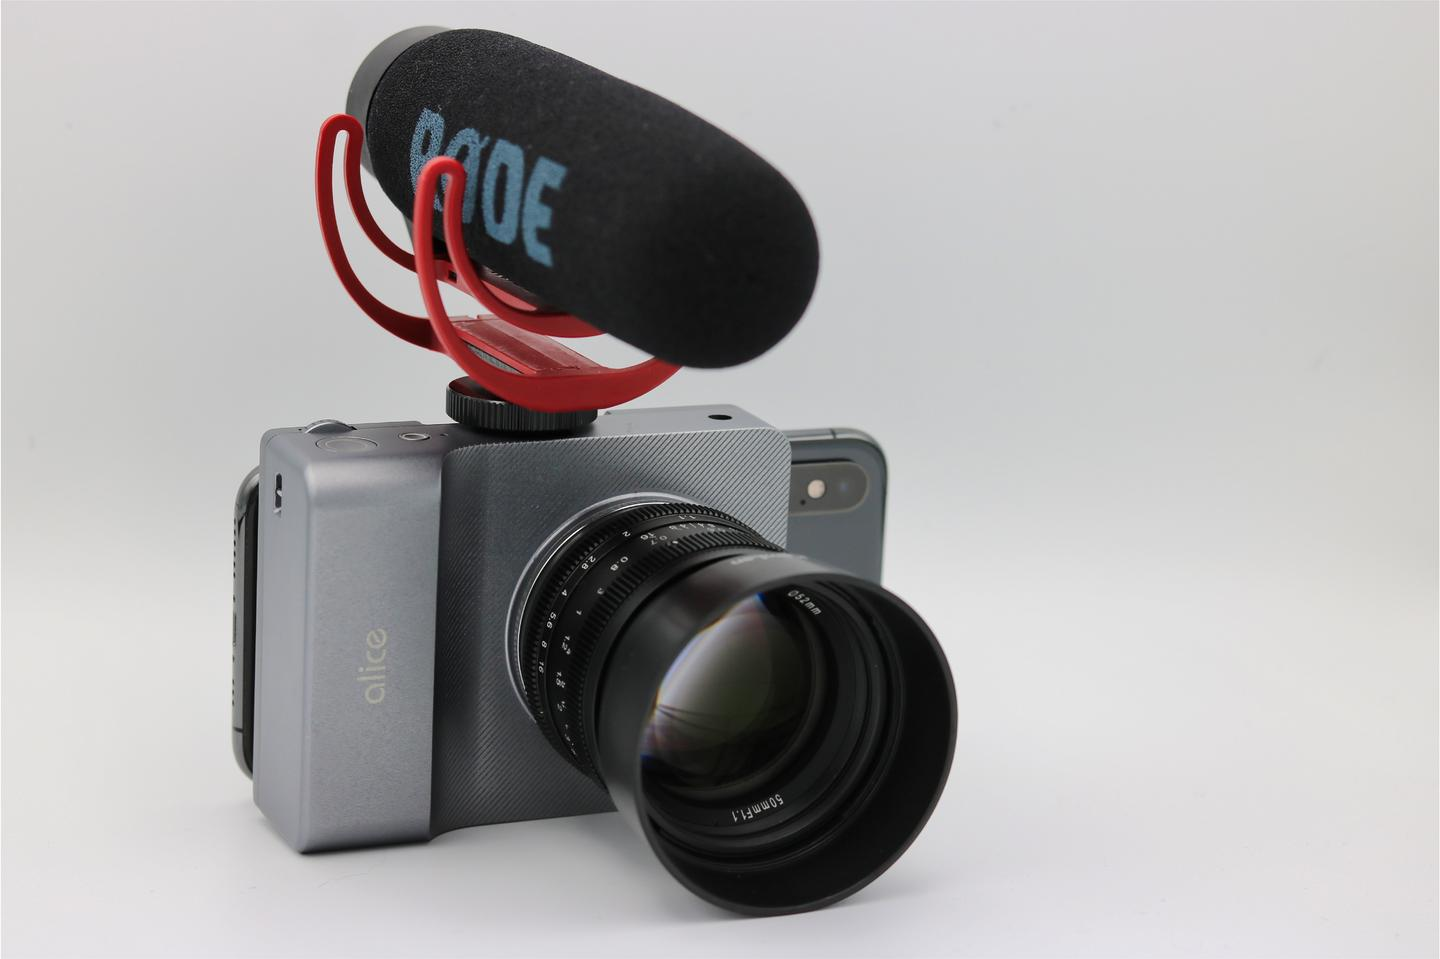 A cold-shoe mount allows hardware like external microphones to be attached to the Alice Camera's body